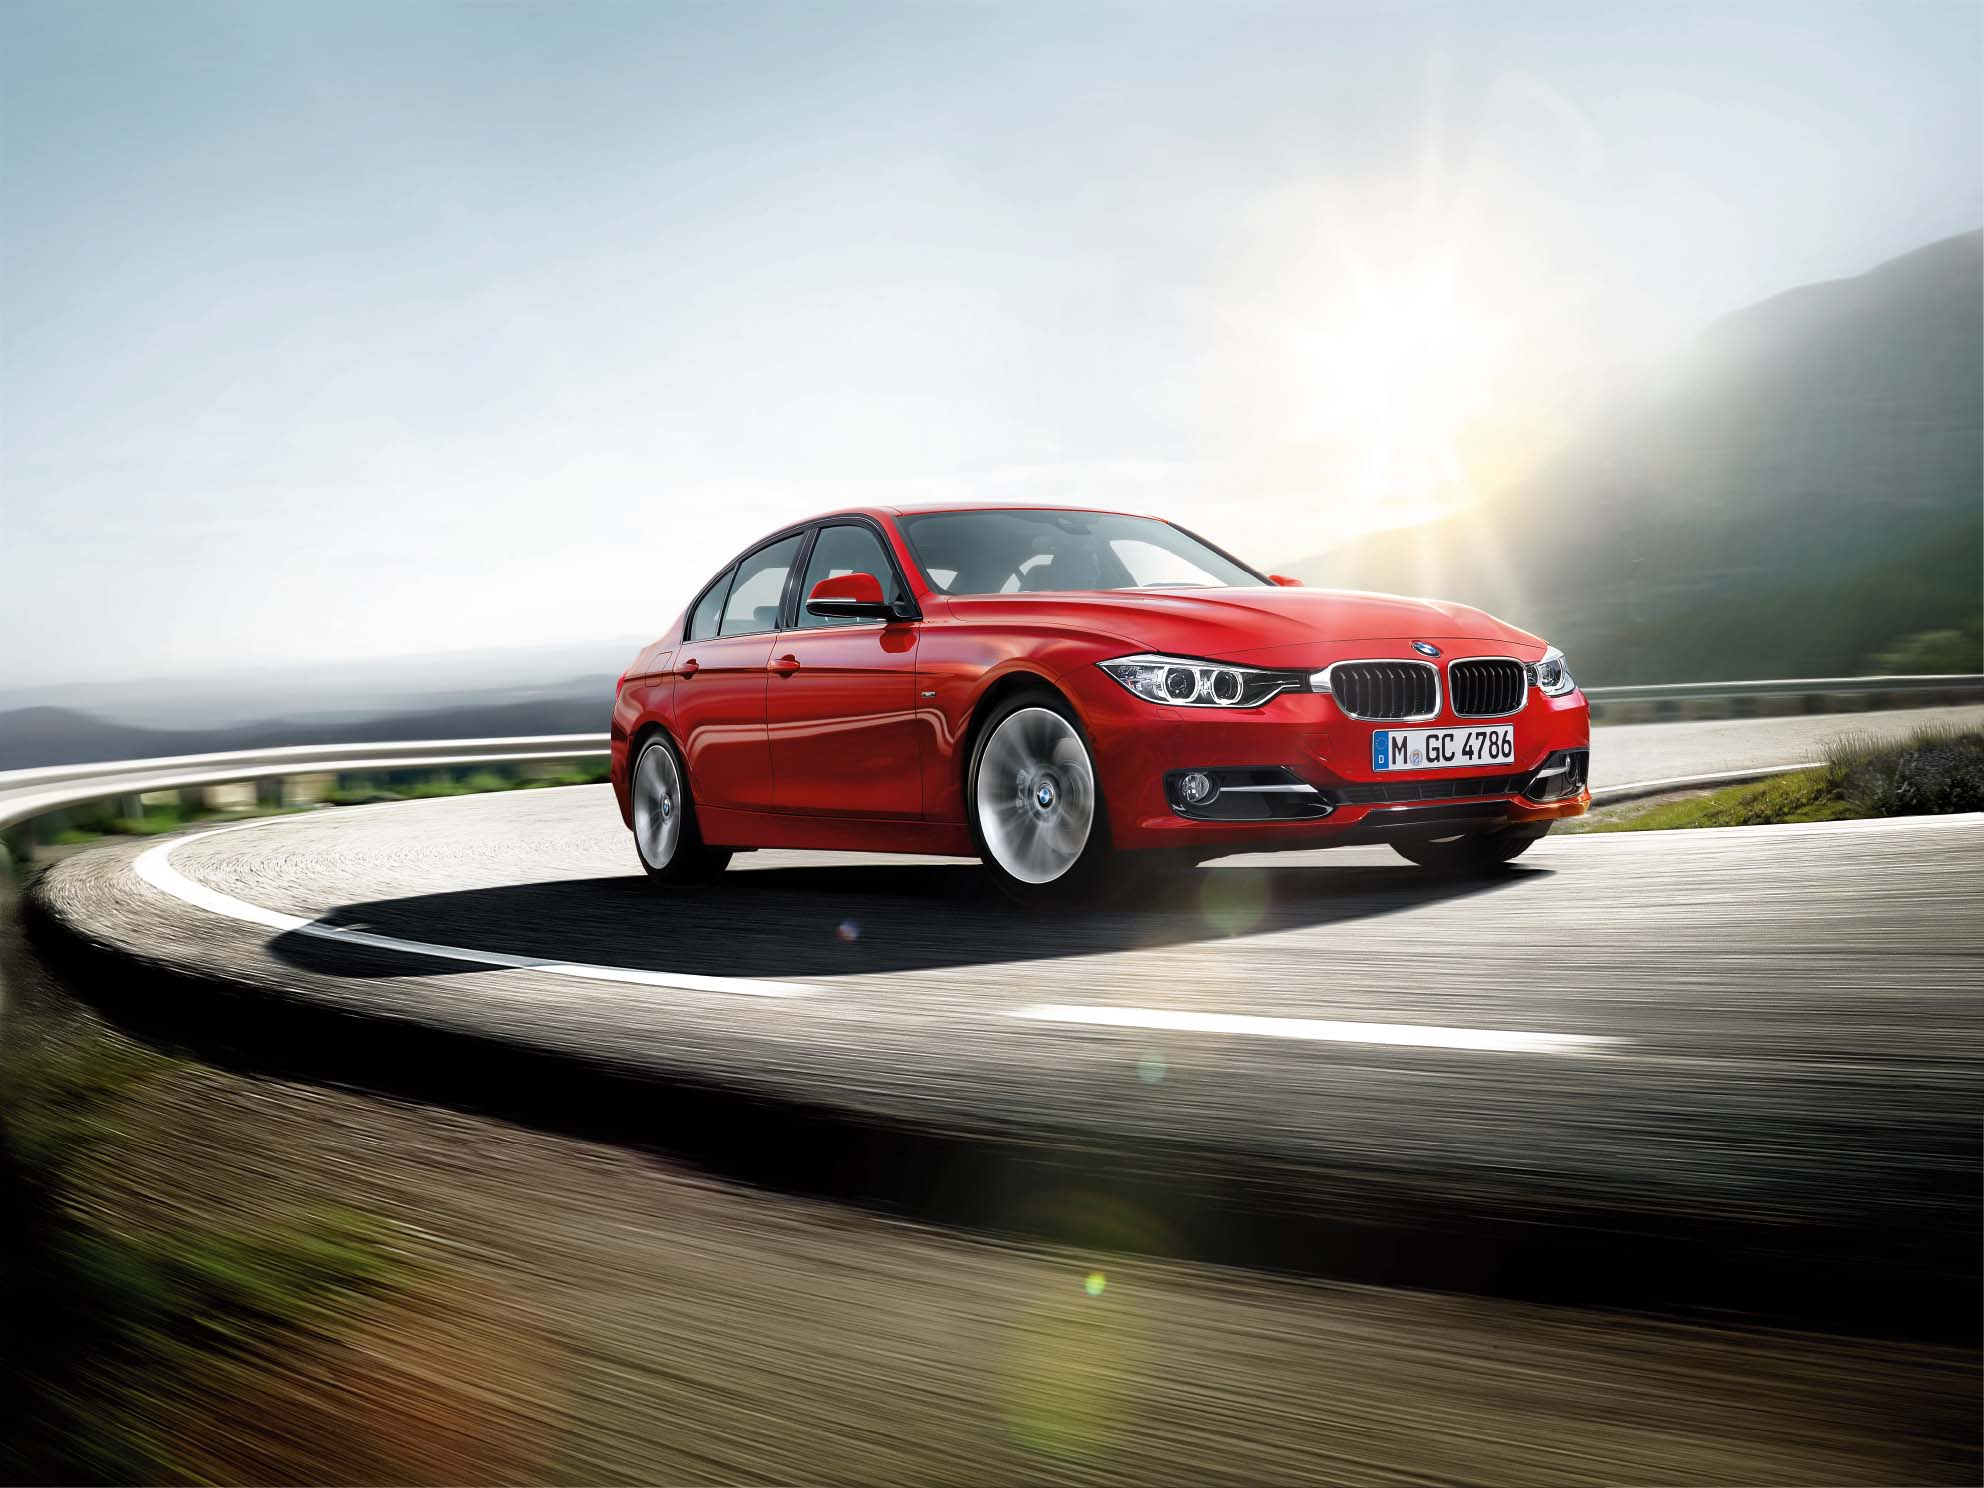 At Sun Motor Cars BMW, Our Showroom Is Brimming With 2015 BMW 3 Series  Models. And, While You May Be Enticed By The New Model Year, We Recommend  Putting ...